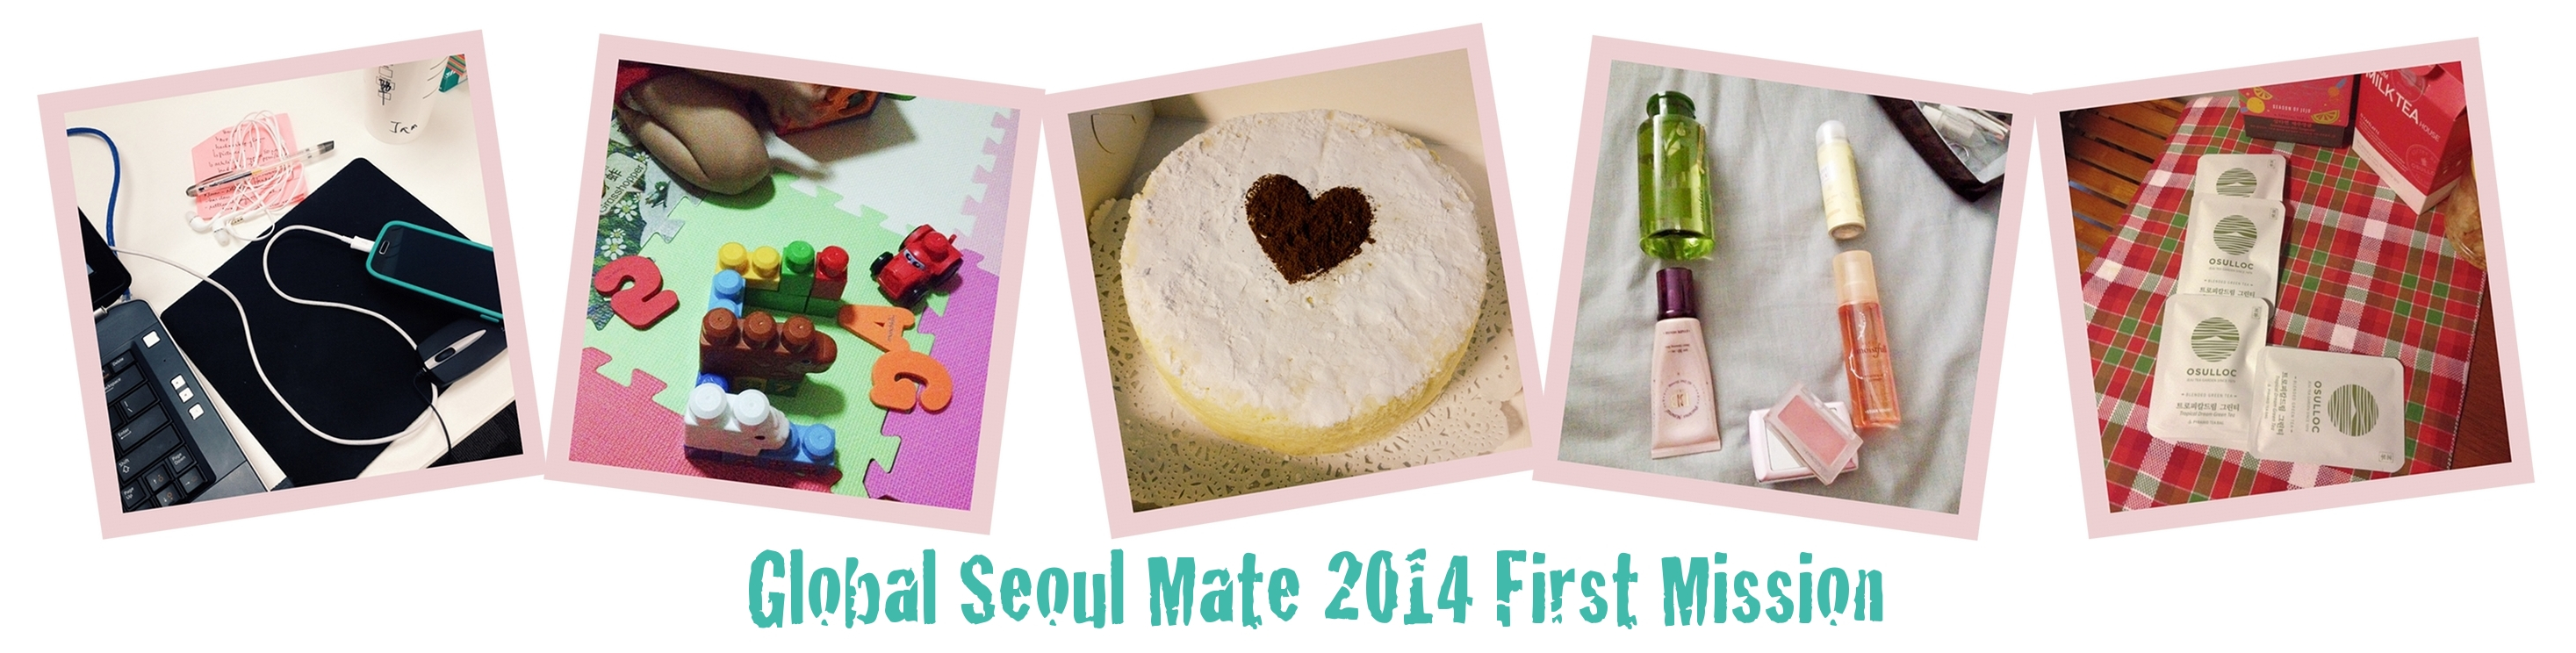 GSM2014-mission1-SEOULcollage